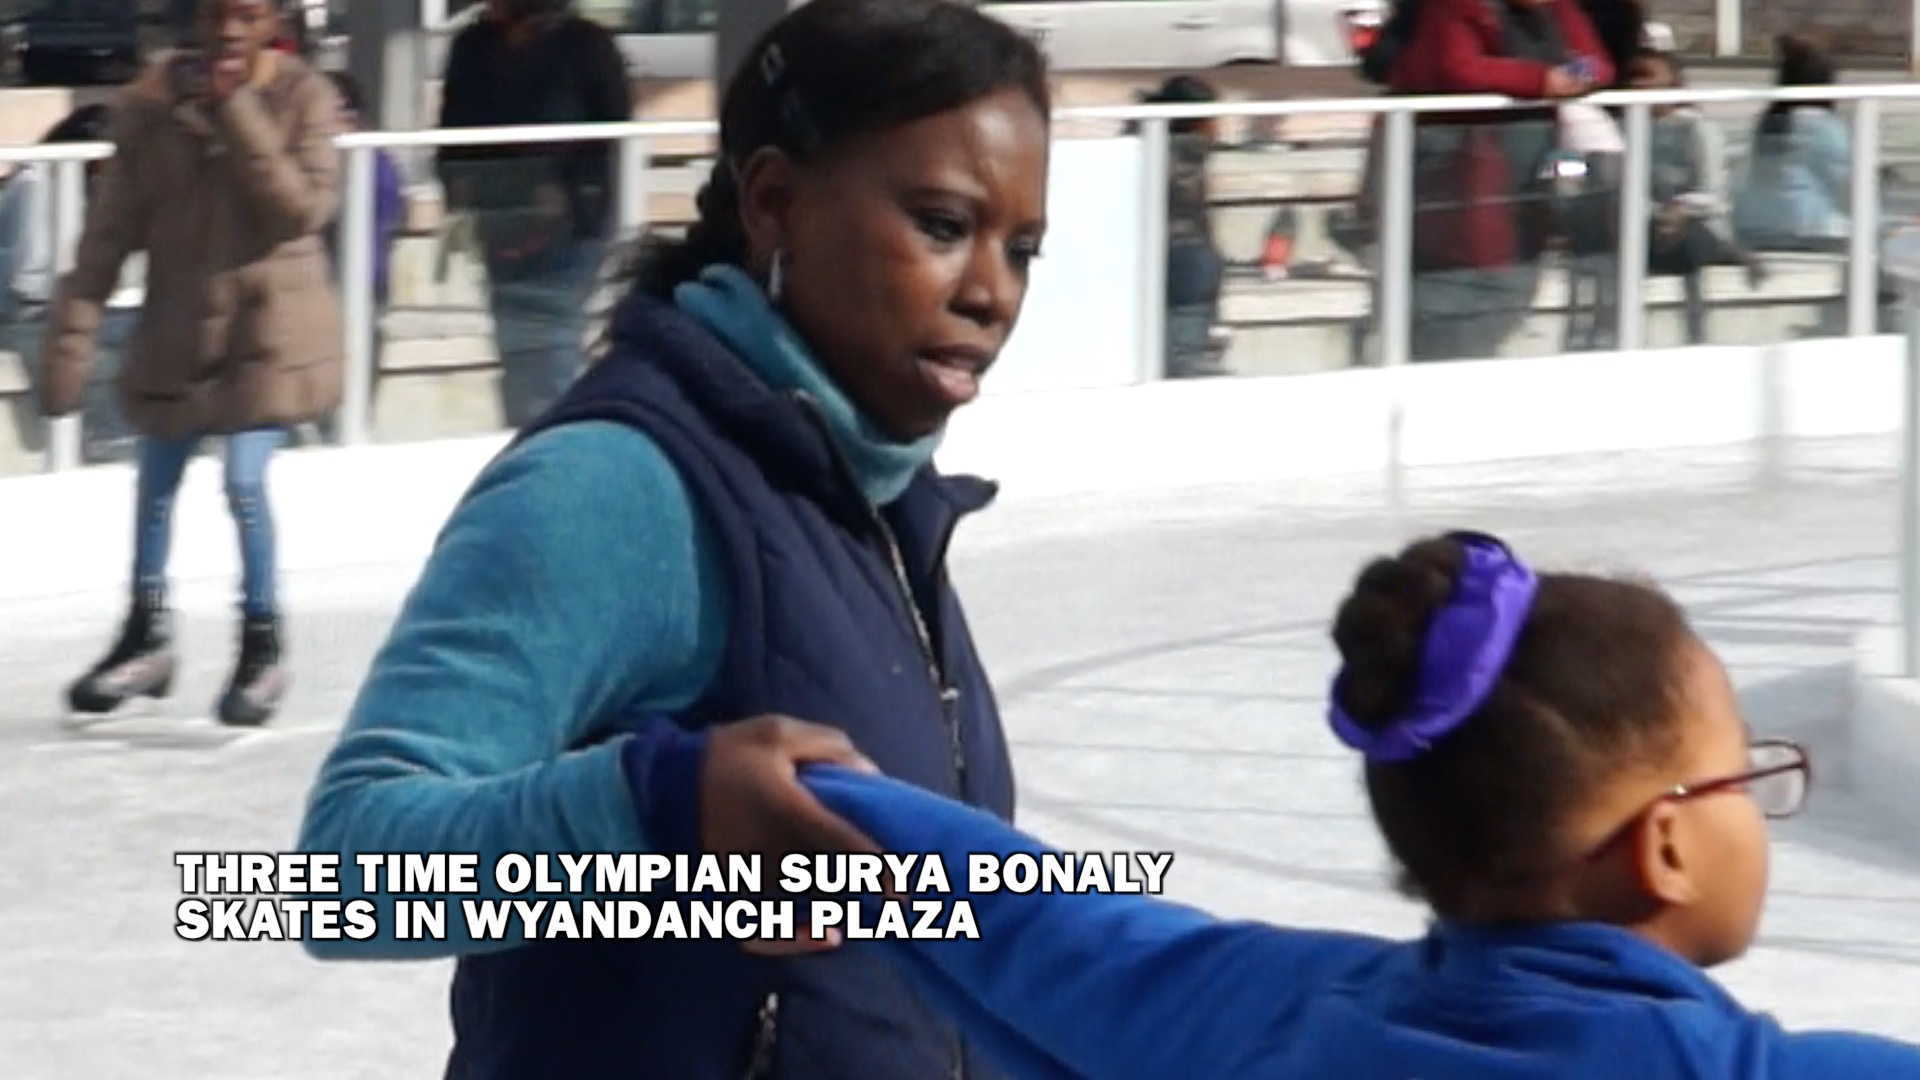 Three Time Olympian Surya Bonaly Ice Skates in Wyandanch Plaza